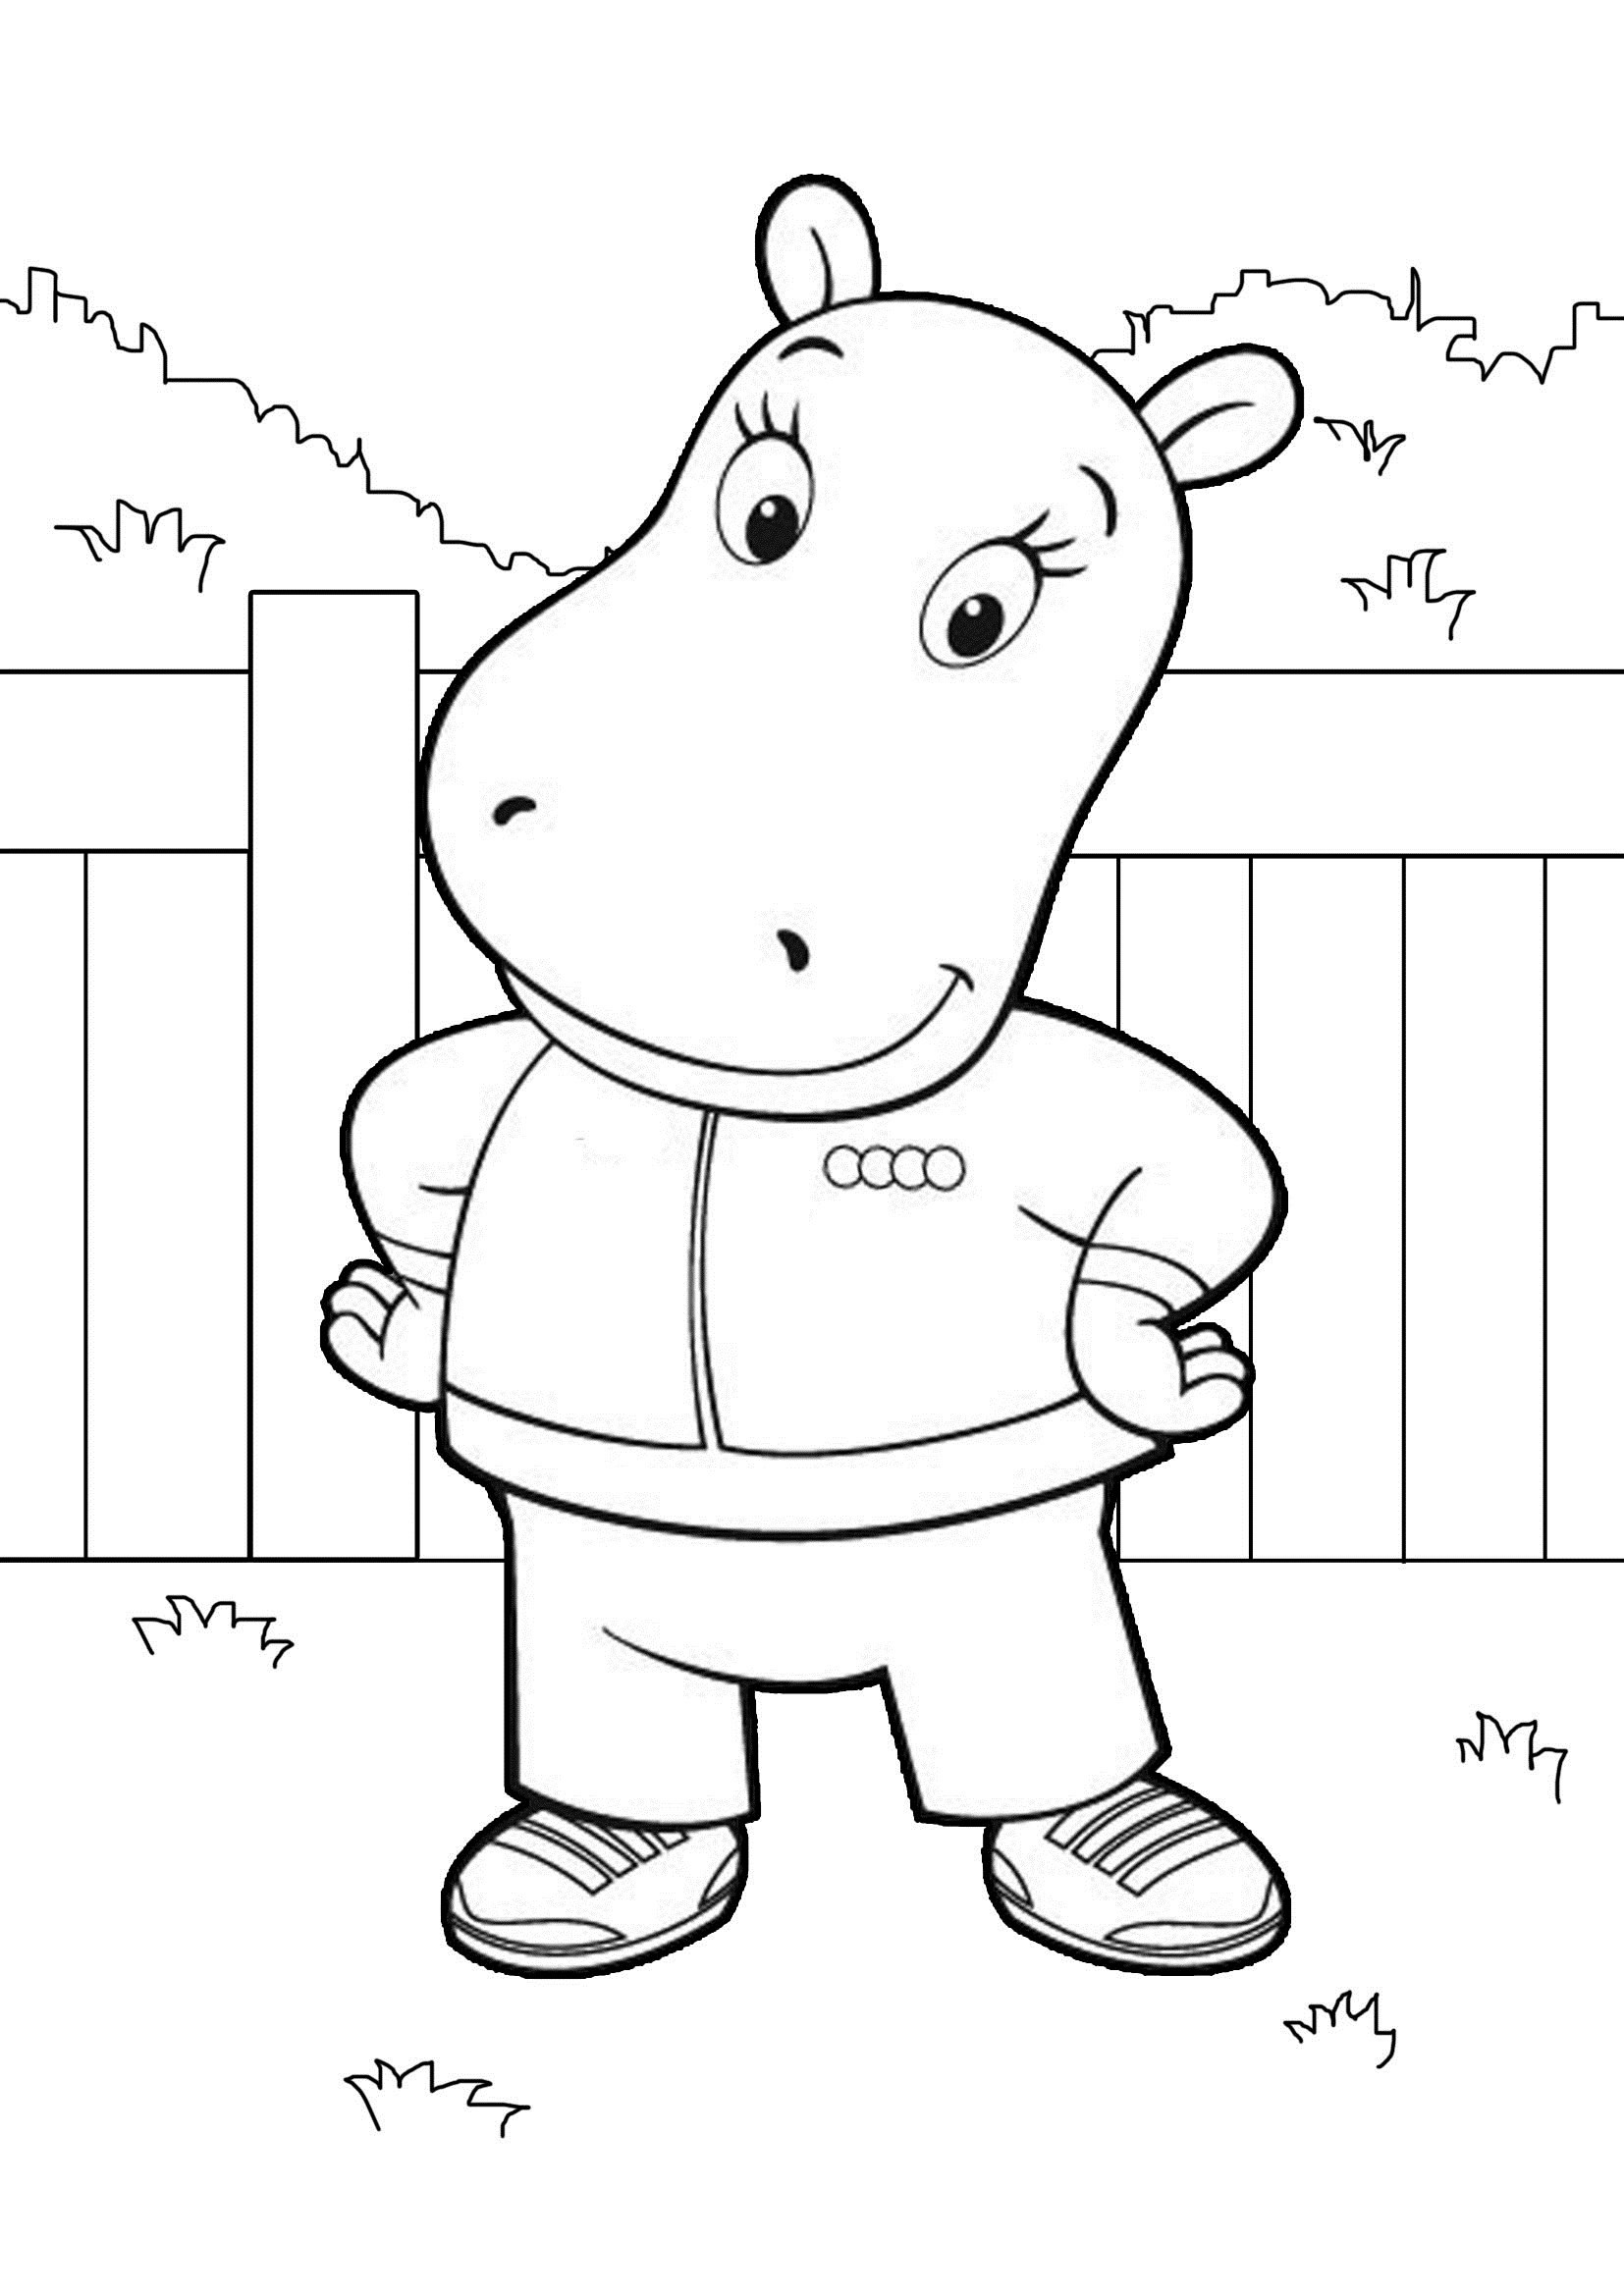 kids coloring sheets free fish coloring pages for kids sheets coloring kids